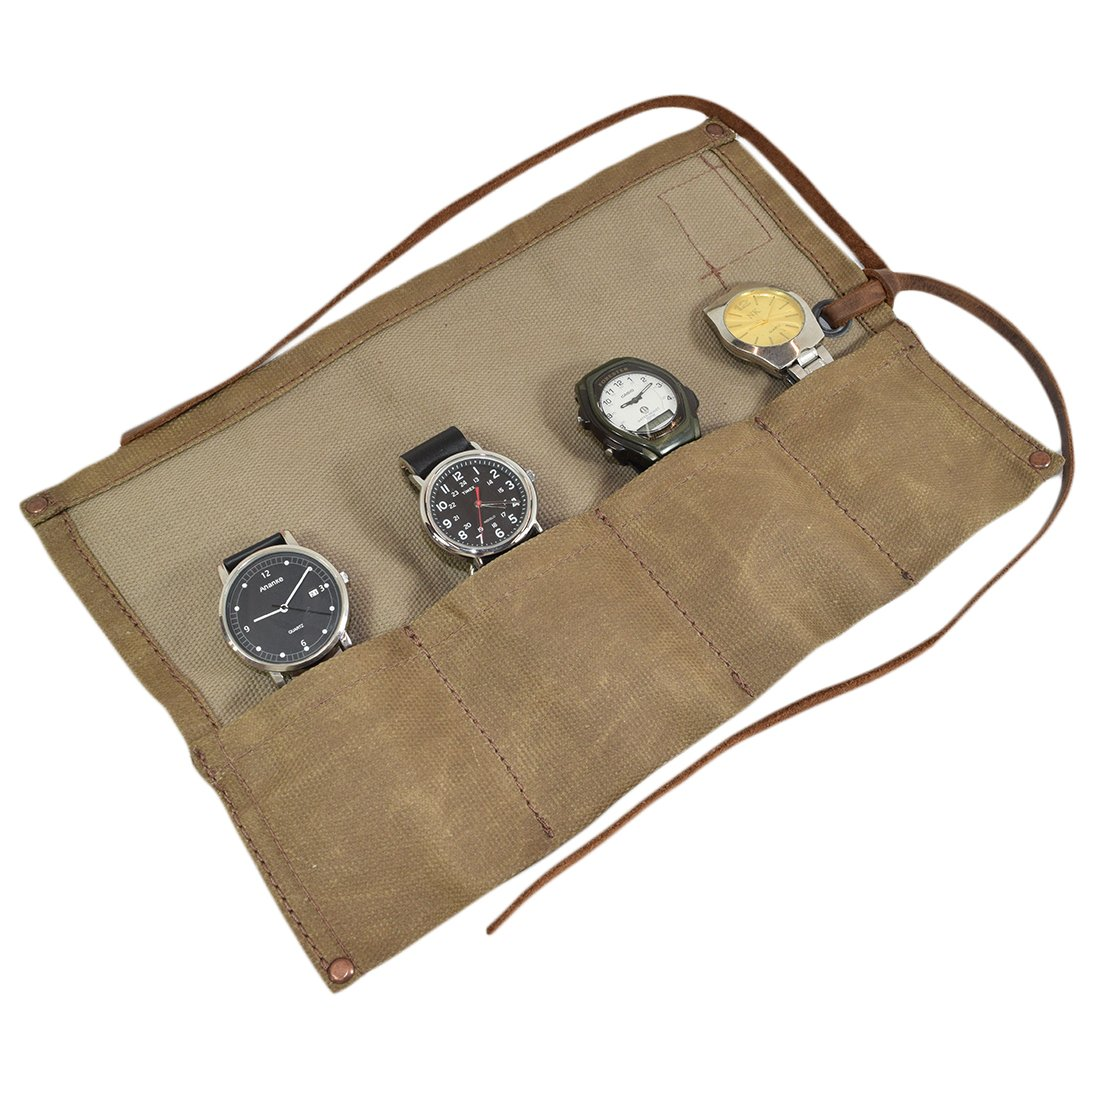 Waxed Canvas Travel Watch Roll Organizer Holds Up To 4 Watches Handmade by Hide & Drink :: Fatigue